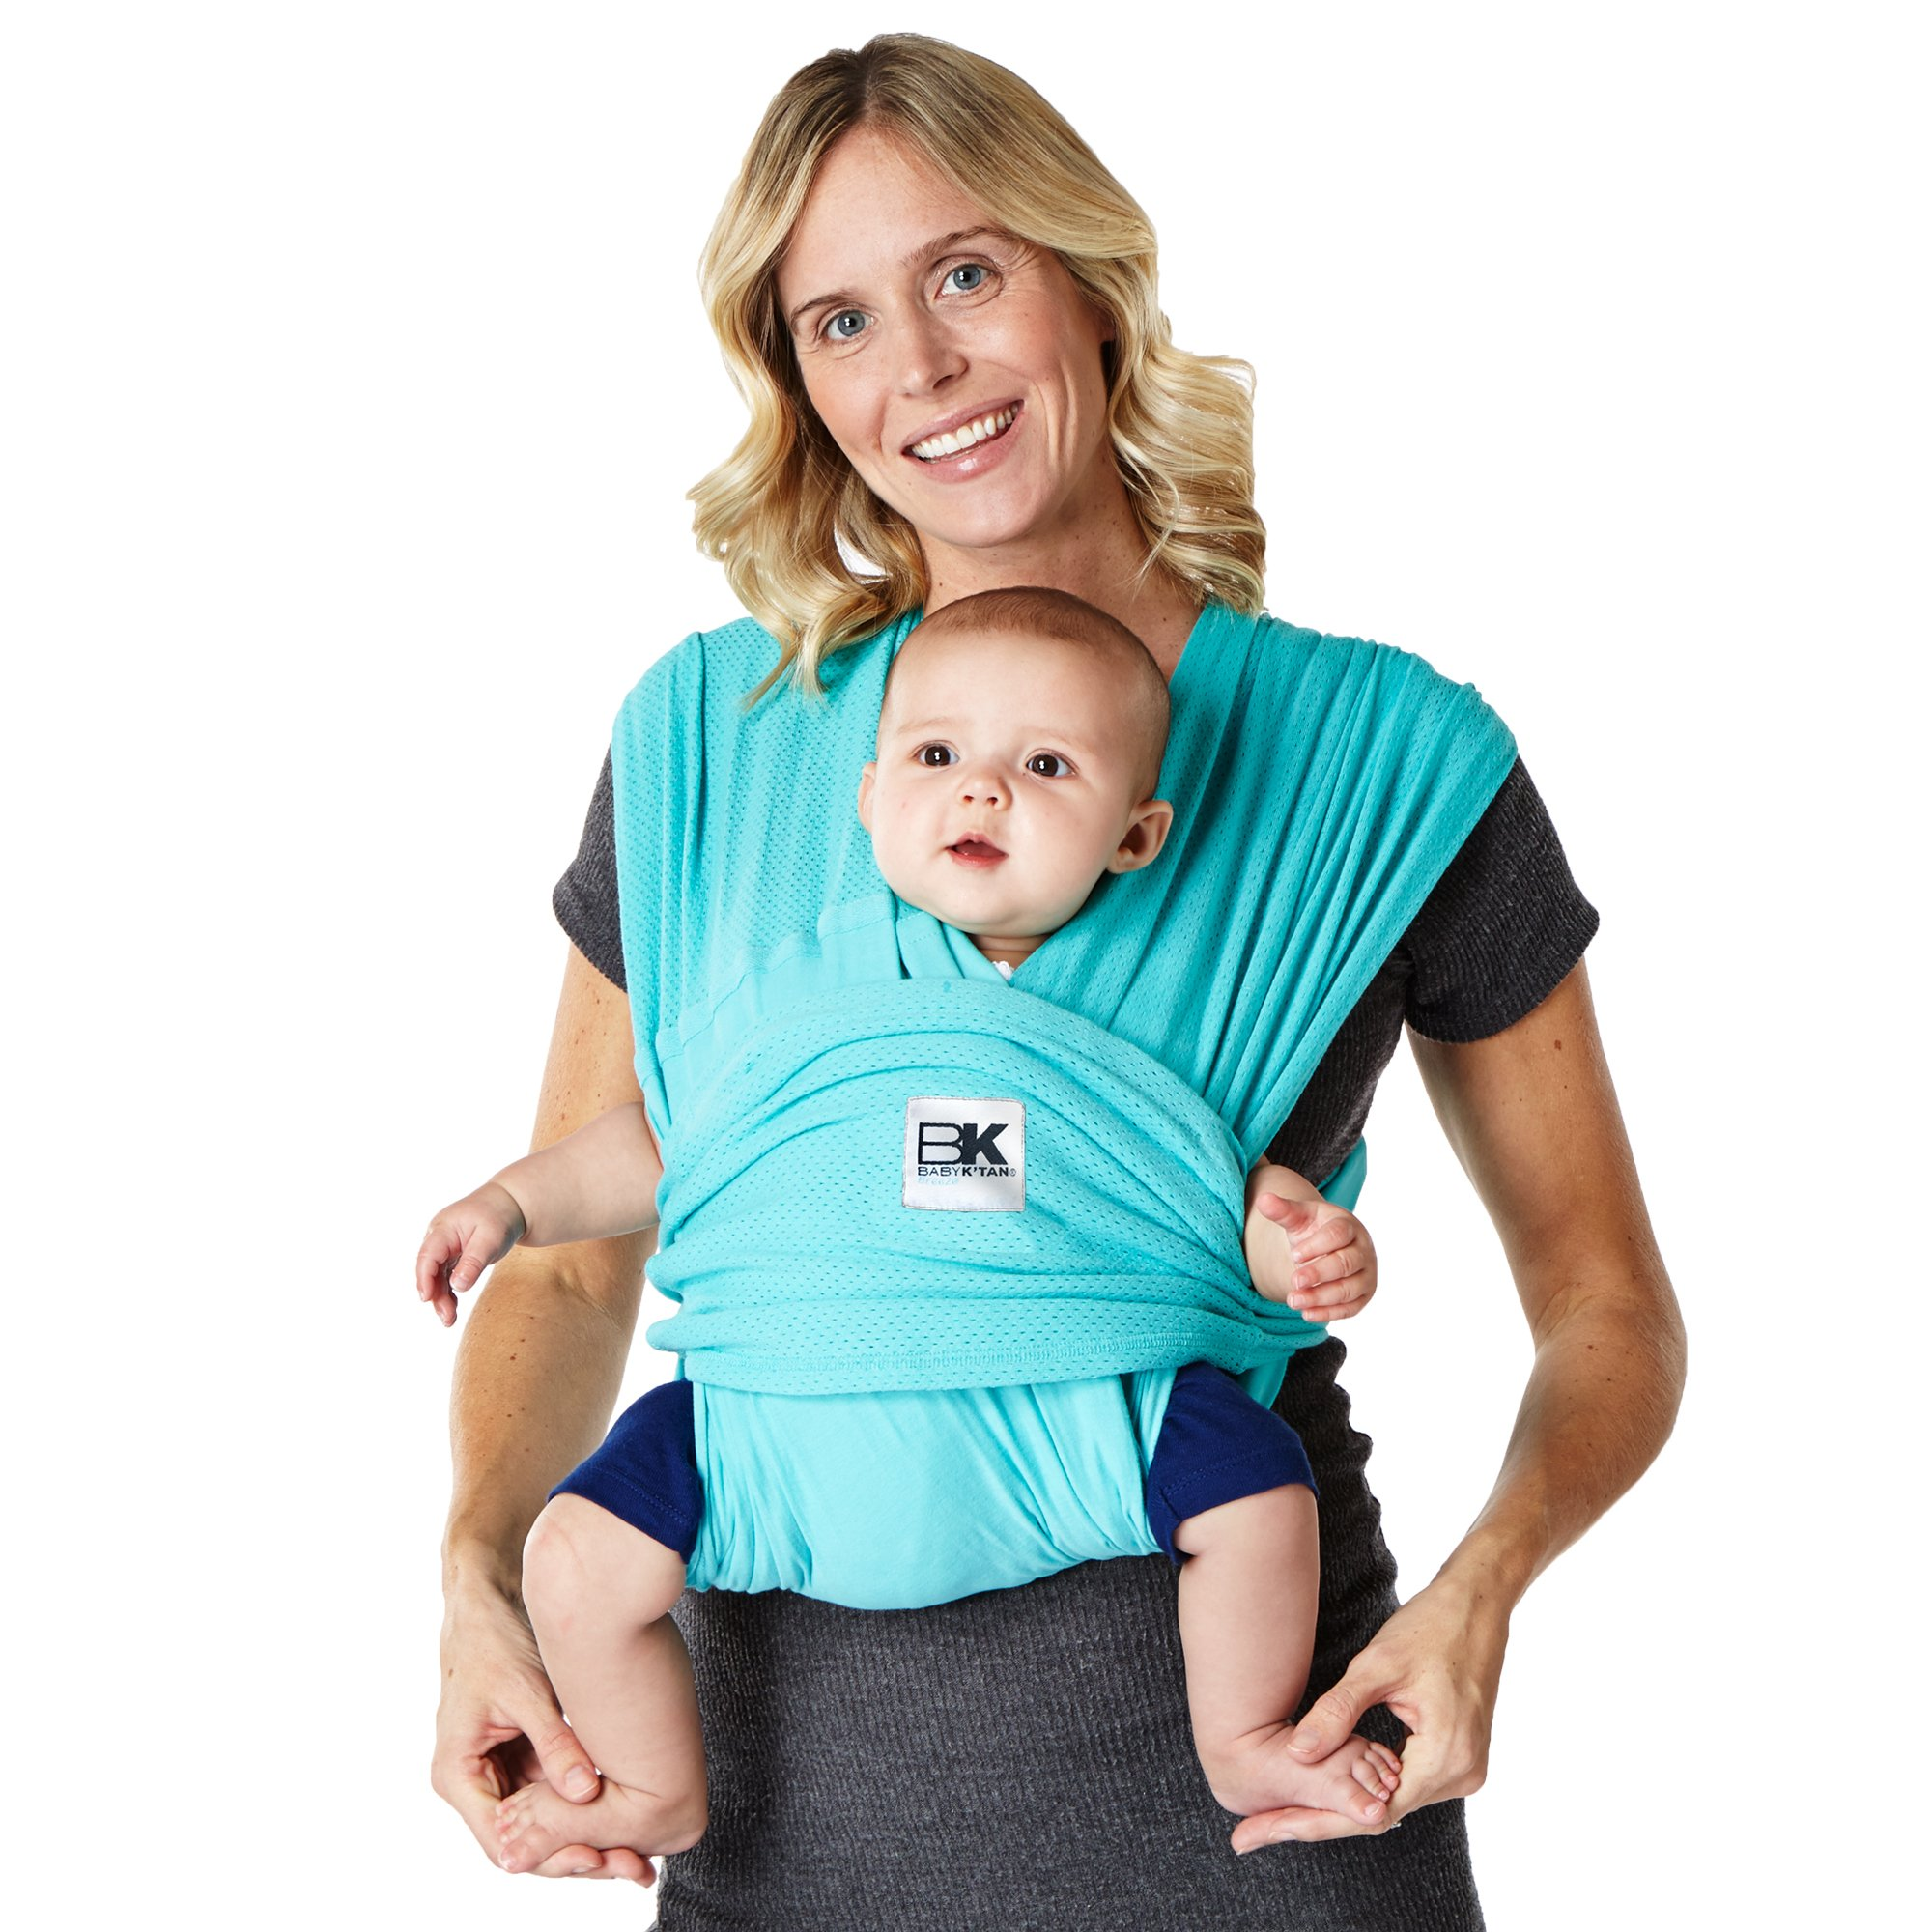 Beanbone Baby K Tan Baby Carrier X Large Teal Breeze